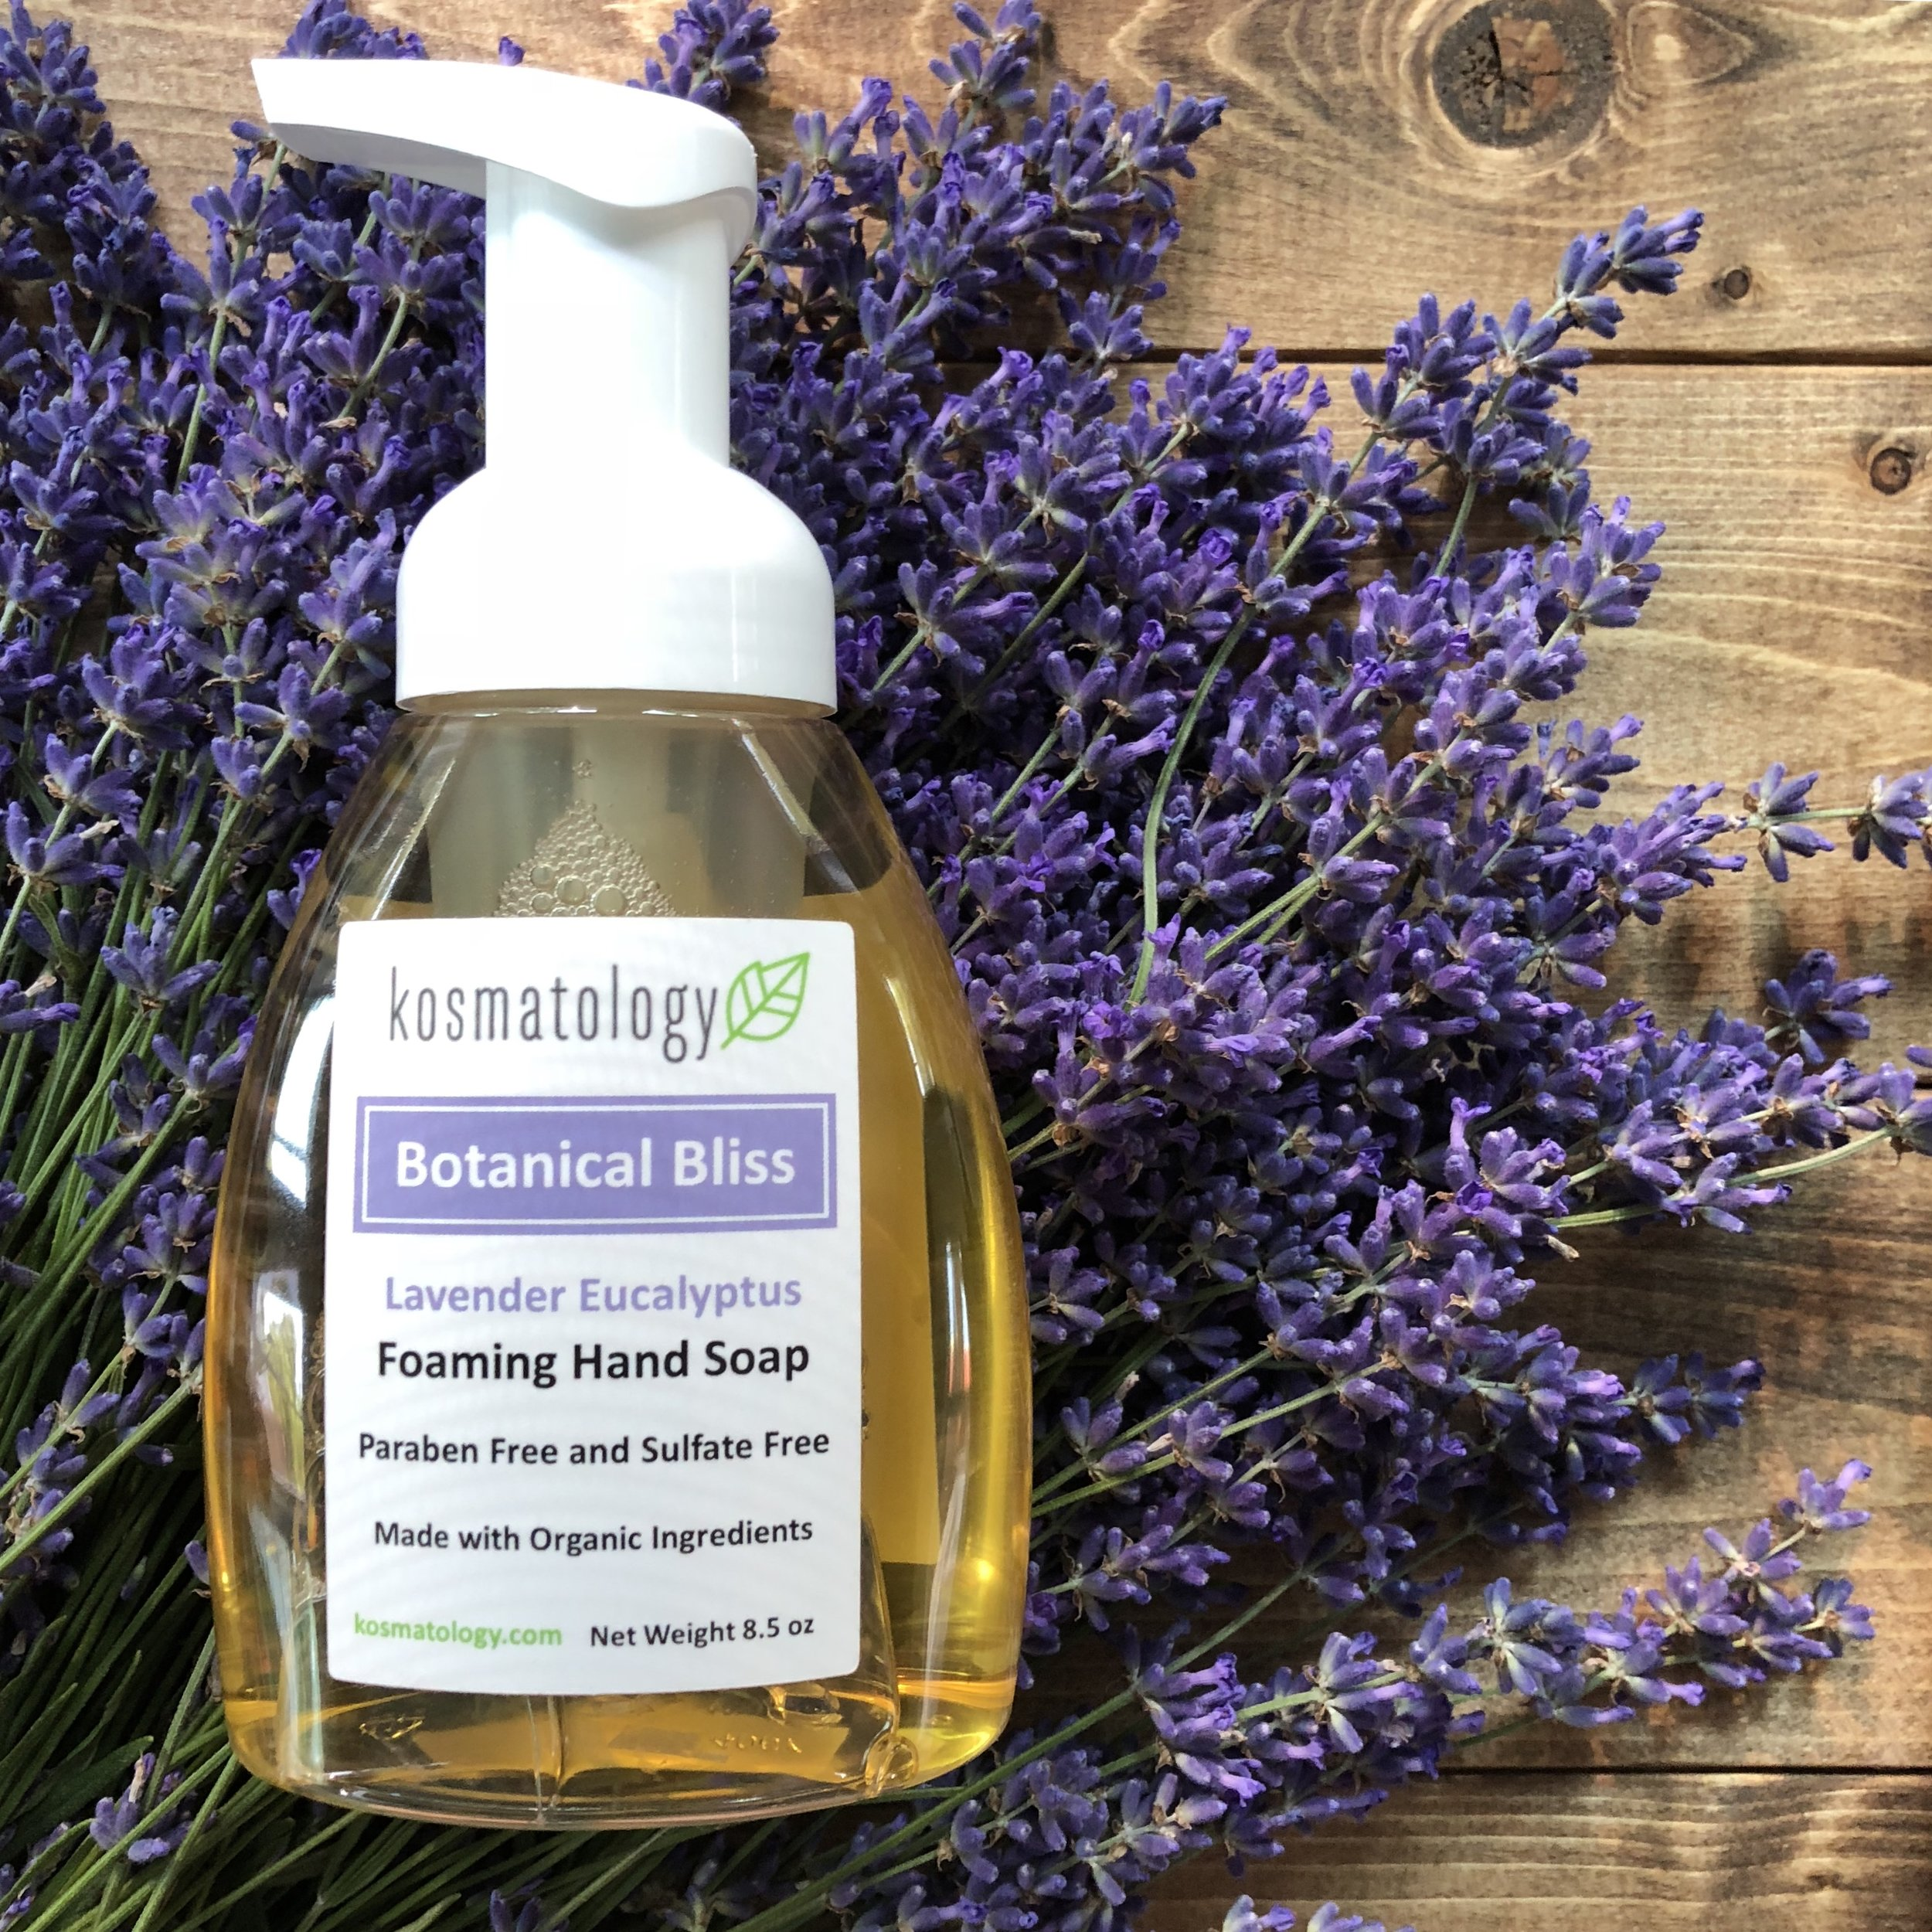 Botanical Bliss Foaming Hand Soap with Lavender Flowers